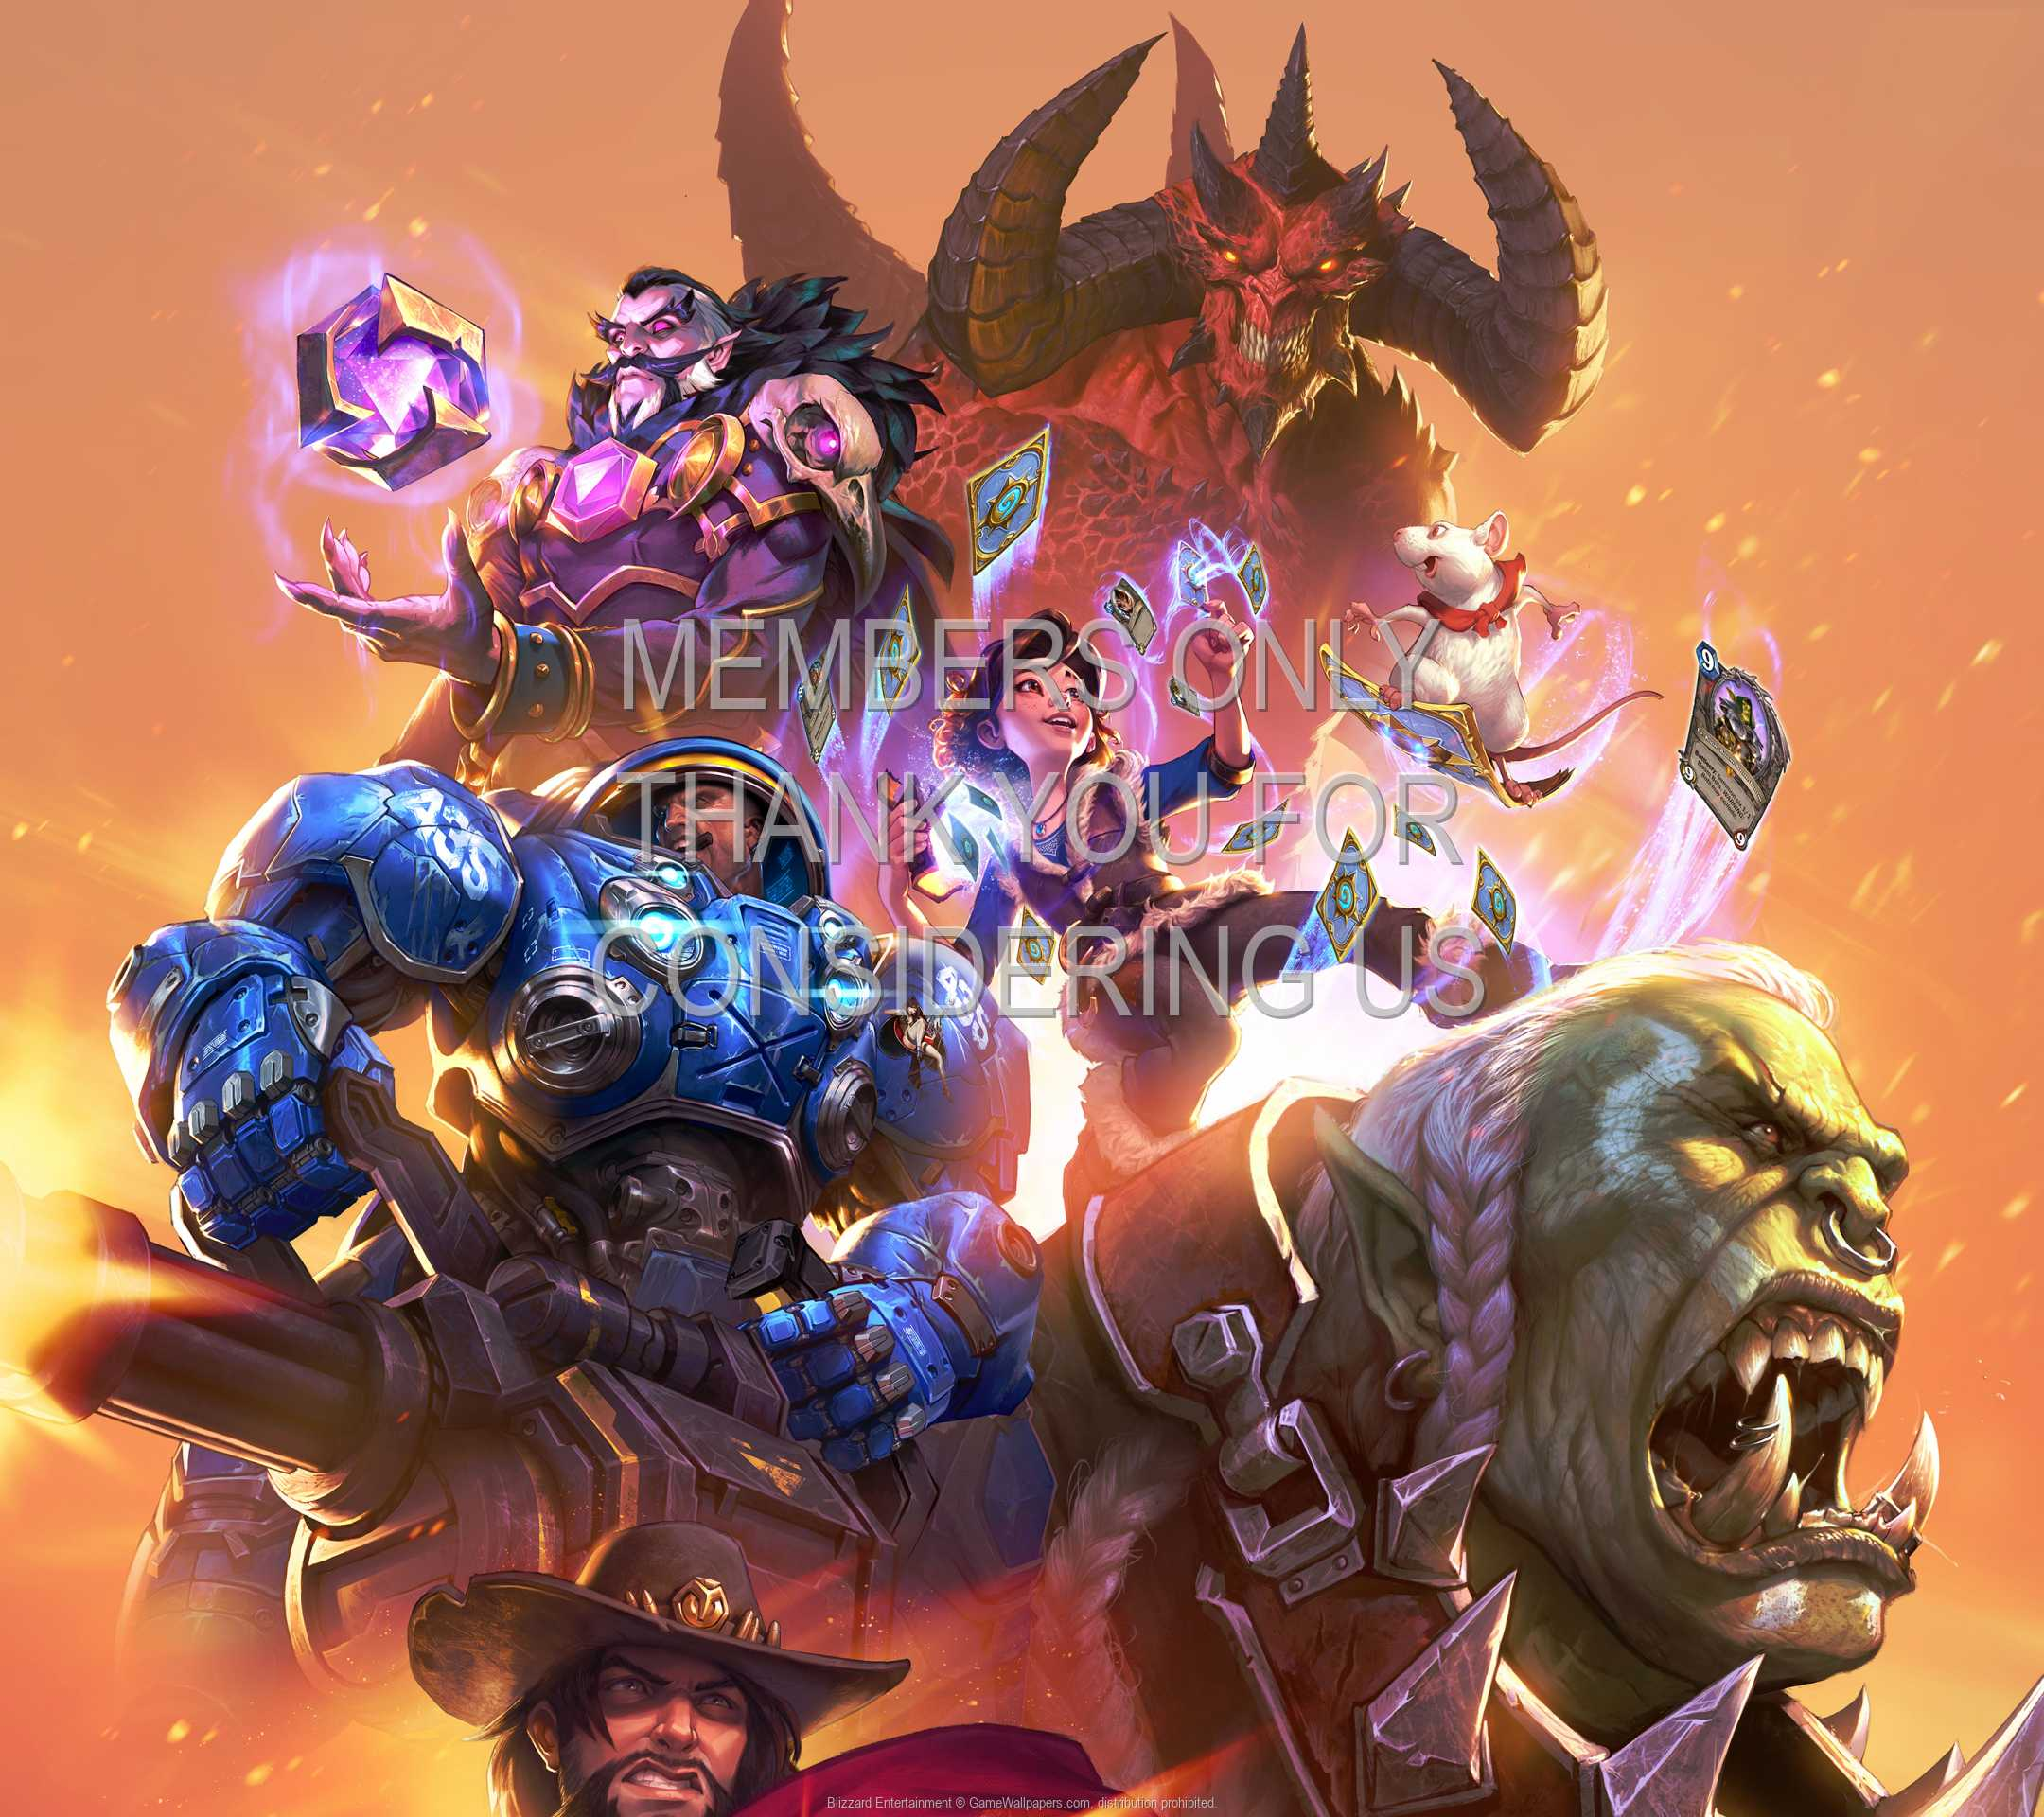 Blizzard Entertainment 1080p Horizontal Mobile wallpaper or background 05